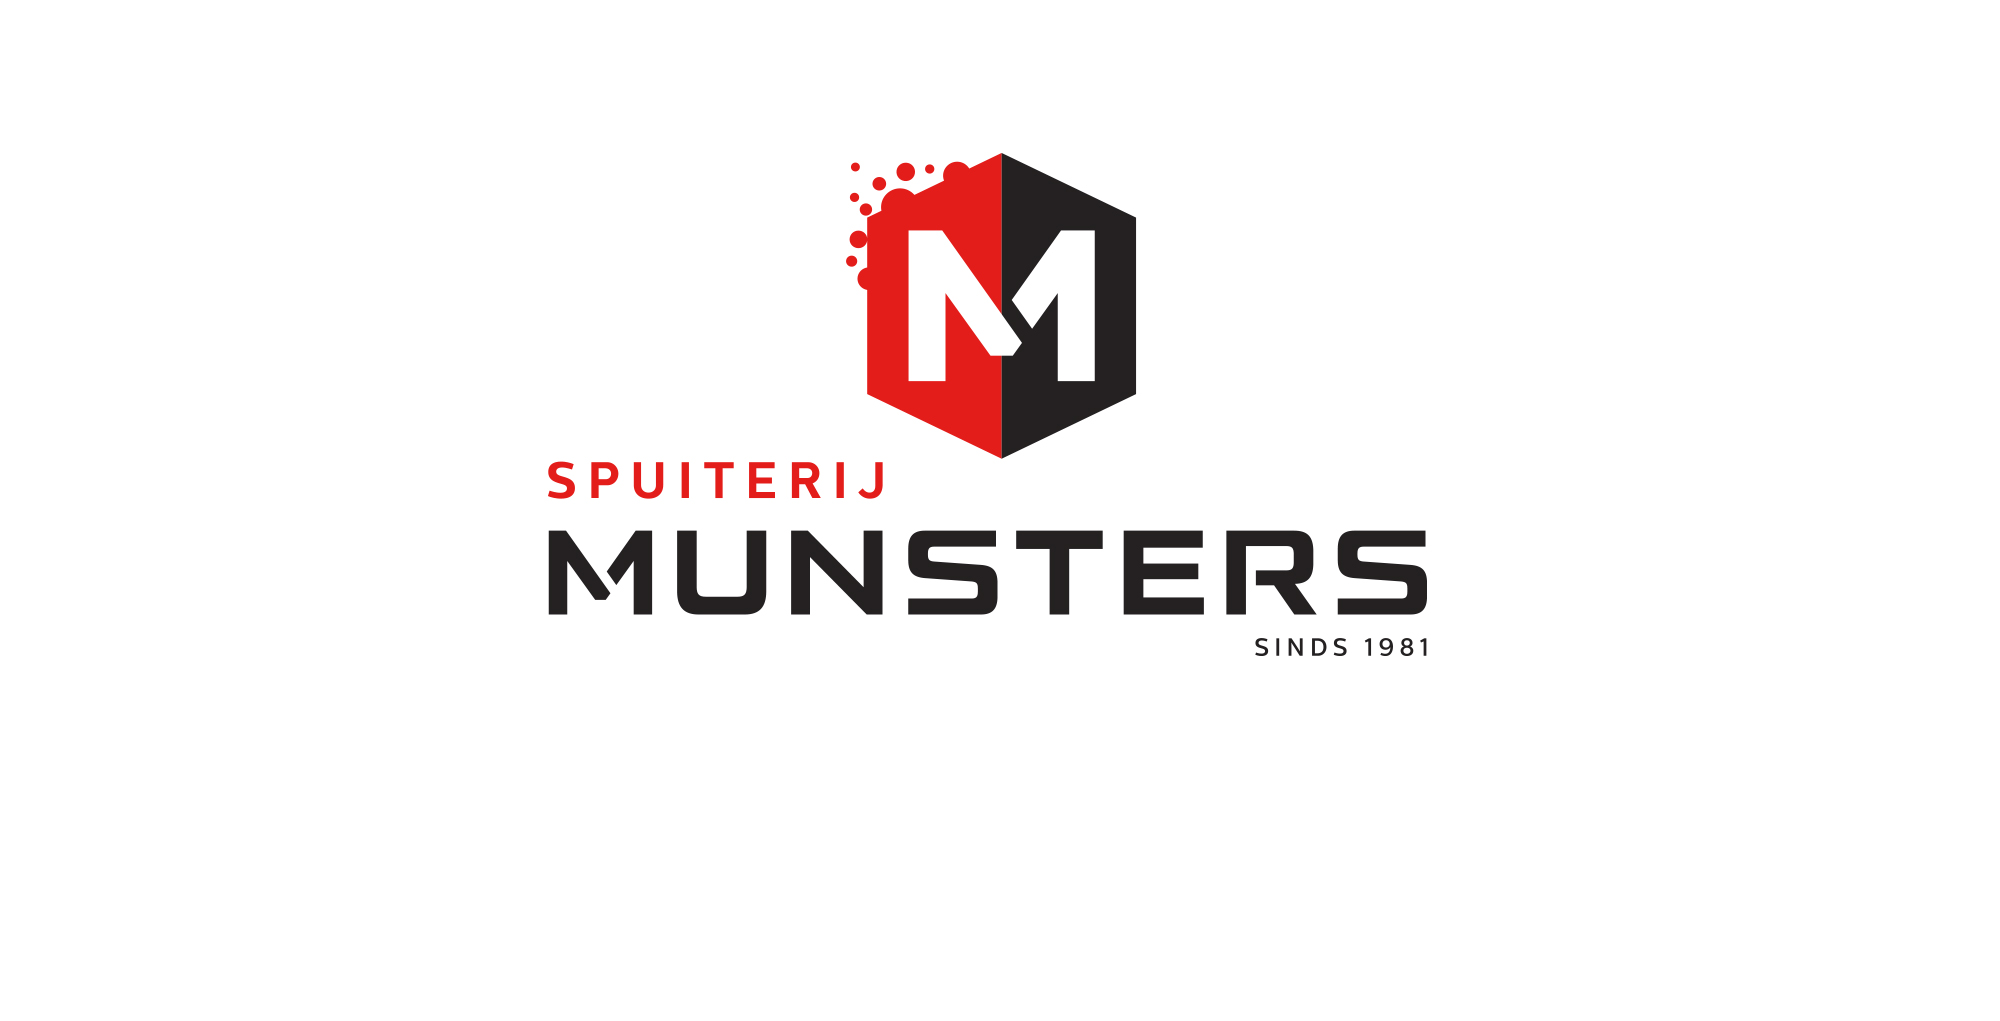 Logo Spuiterij Munsters - Spiegel crossmedia communicatie